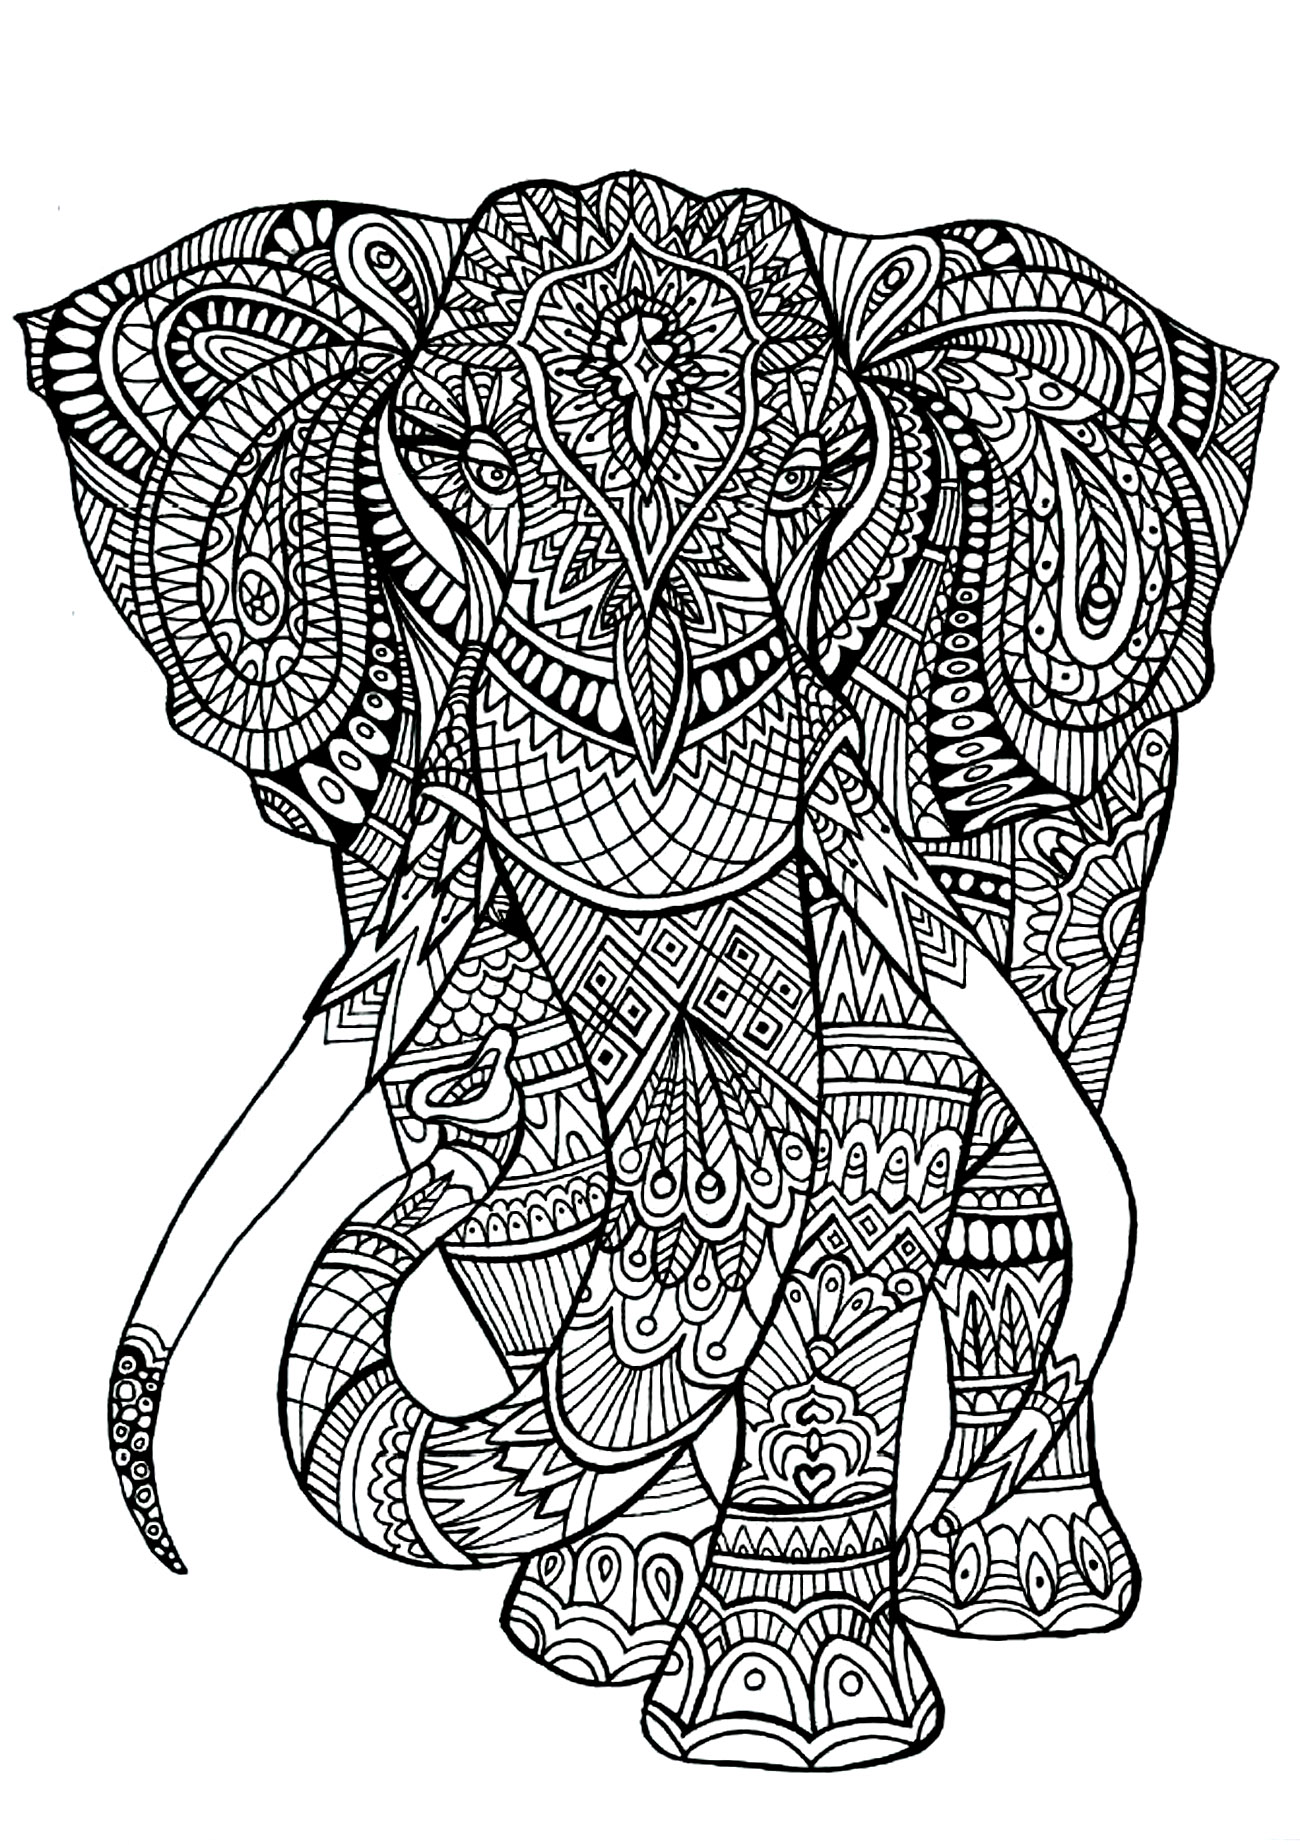 coloring-adult-elephant-patterns.jpg